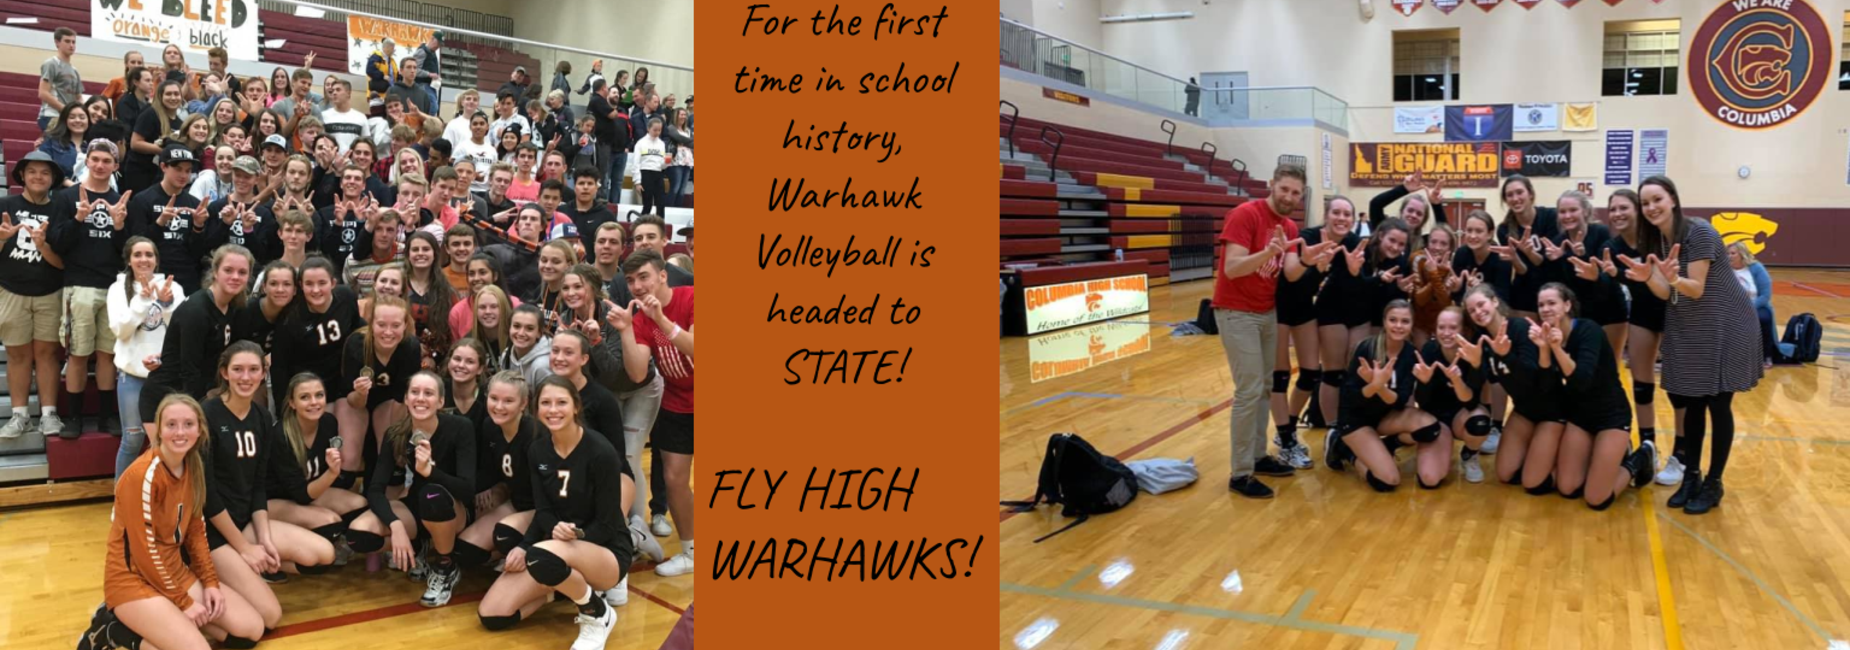 For the first time in school history, warhawk volleyball is headed to state.